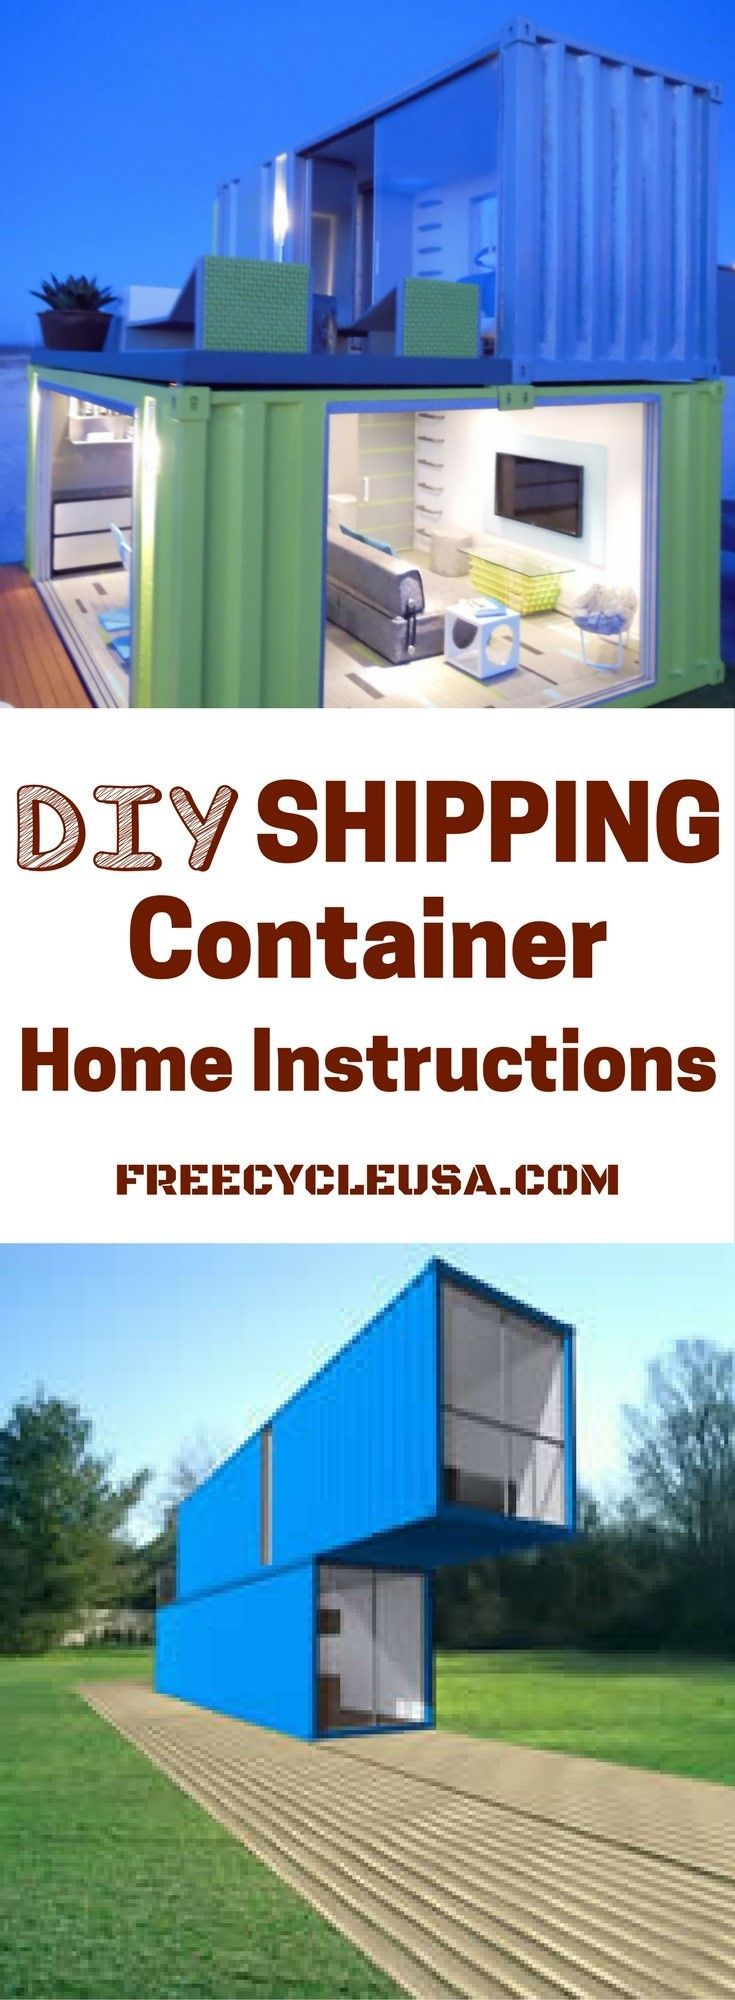 How To Build A Shipping Container Home instructions There are 10 things you should do and 10 you should not do when building with shipping containers. With rising cost of building, more and more people want to do DIY projects. One of the easies ways is to add Shiiping Container Homes to your DIY list.